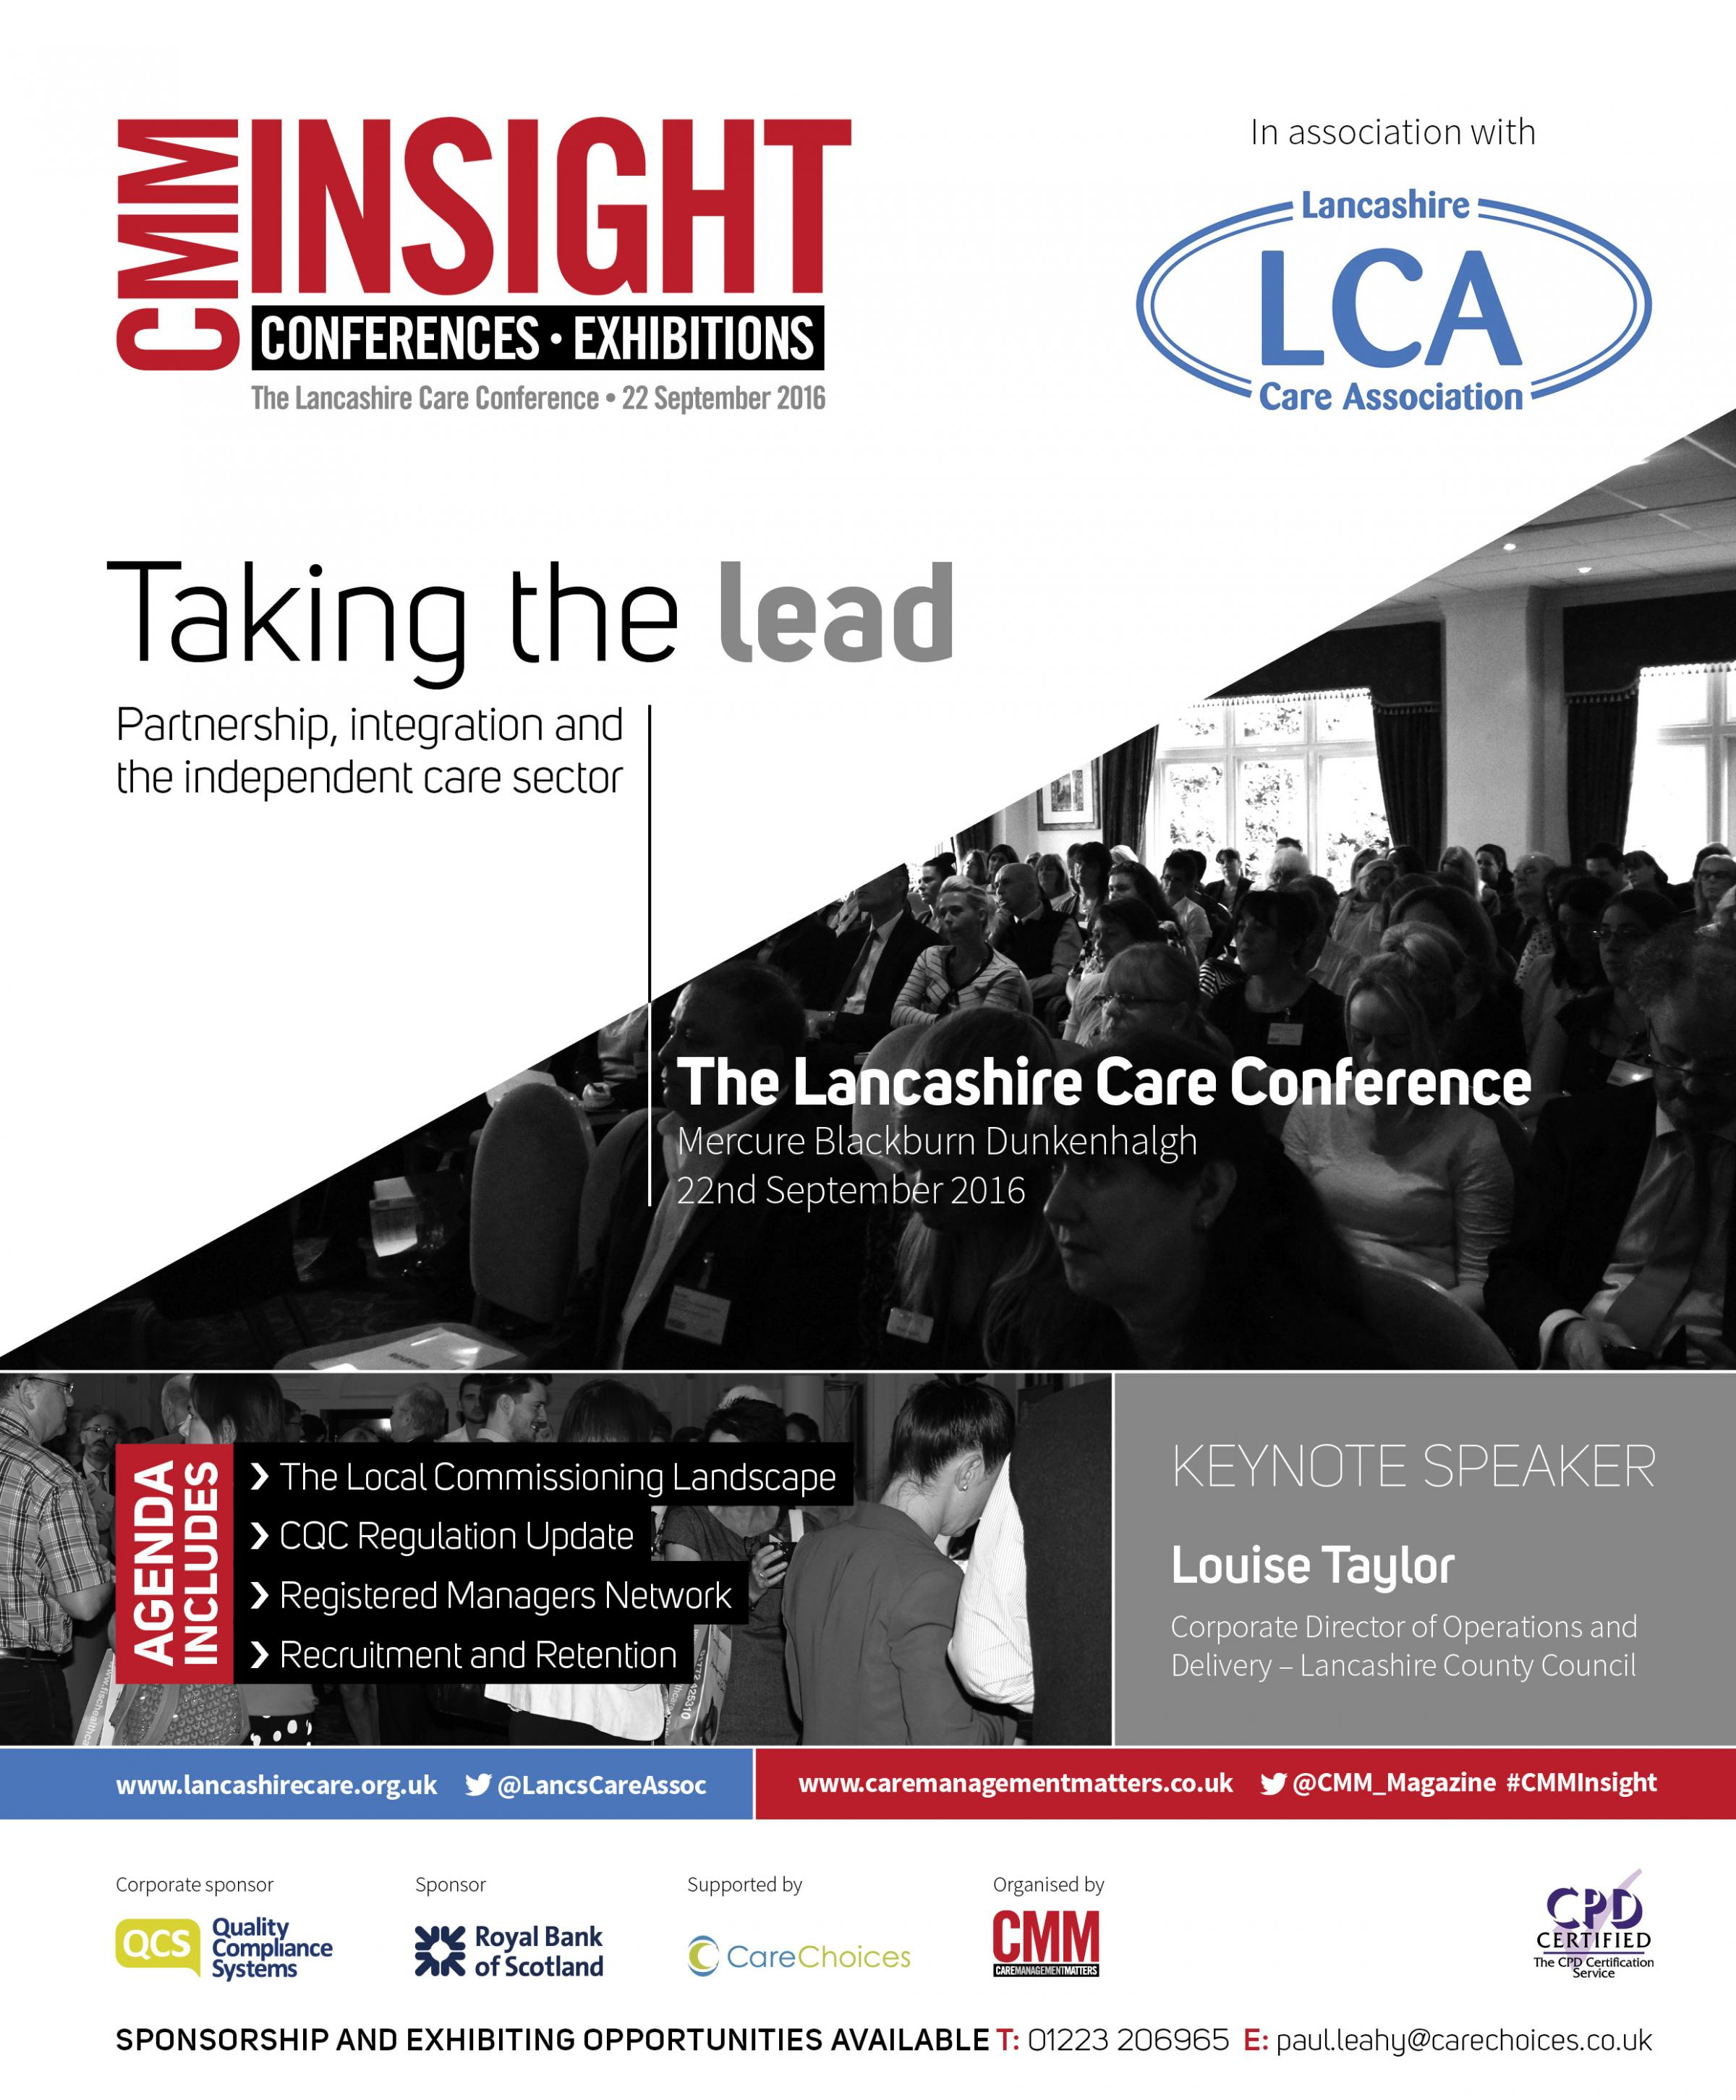 Taking the lead: Partnership, integration and the independent care sector